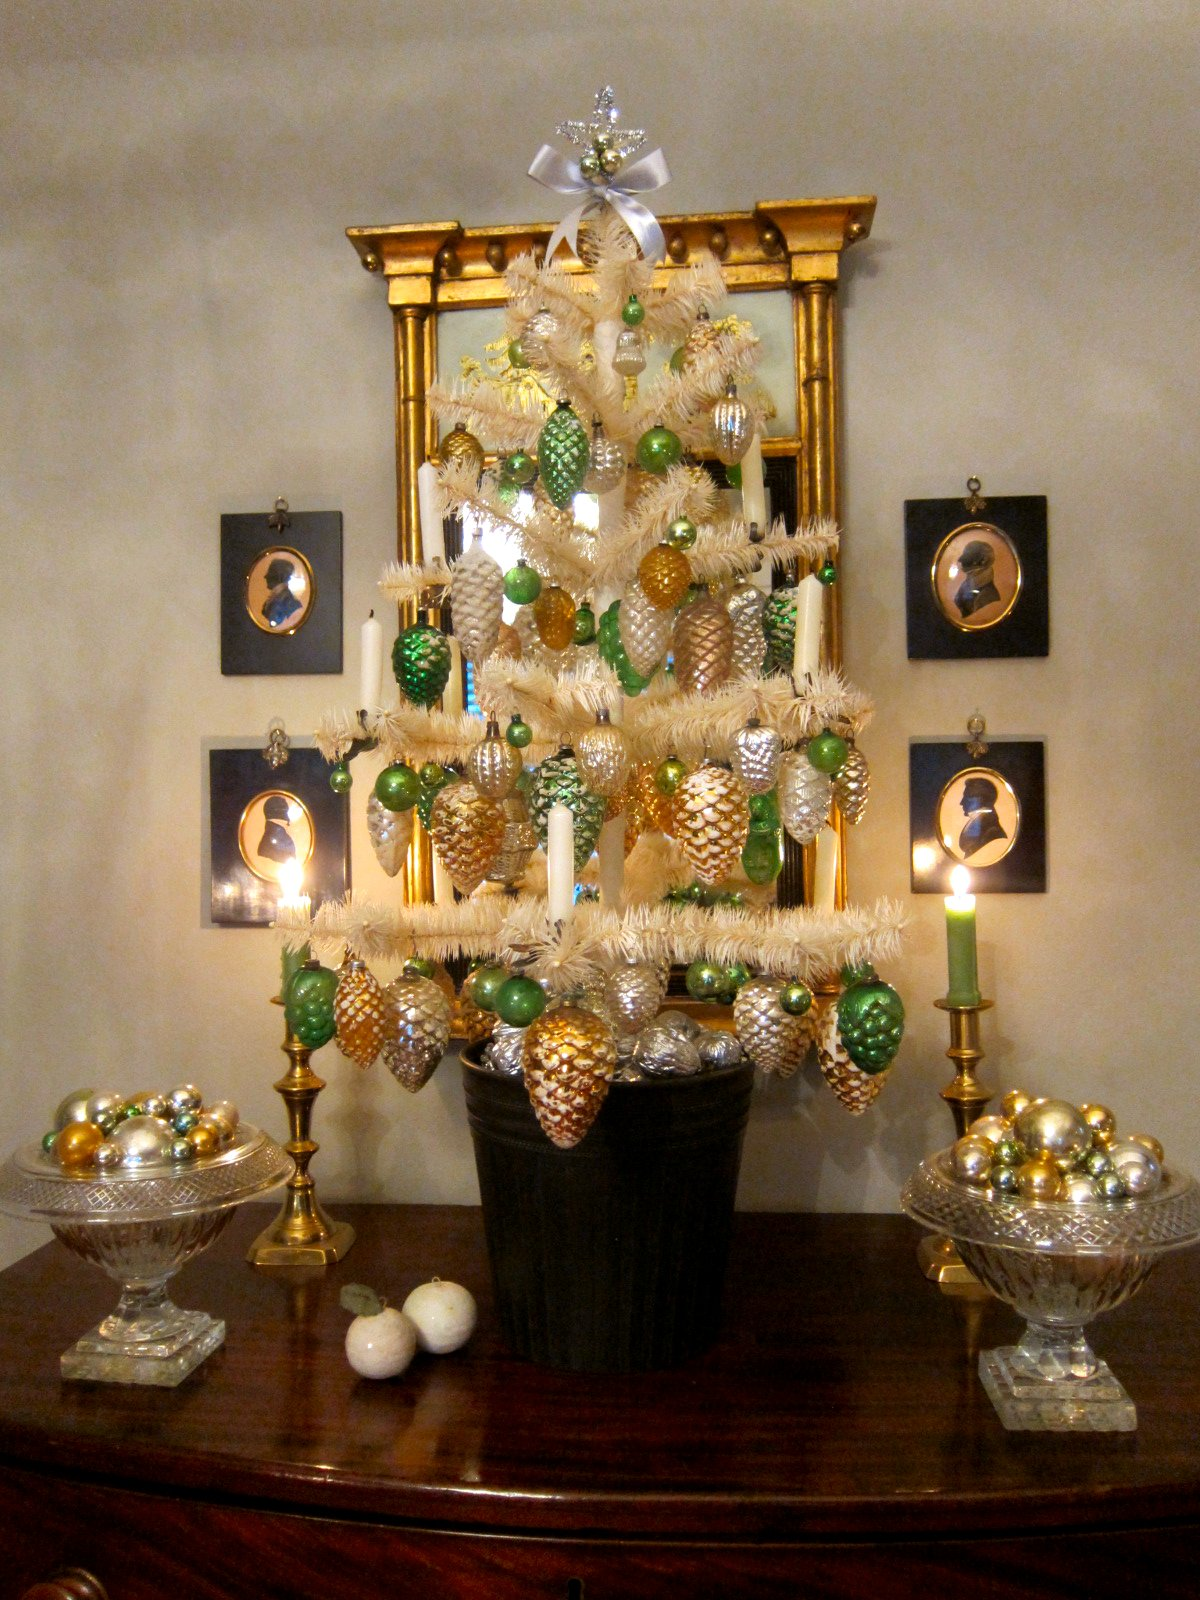 Chronica Domus: The Golden Glow of Christmas